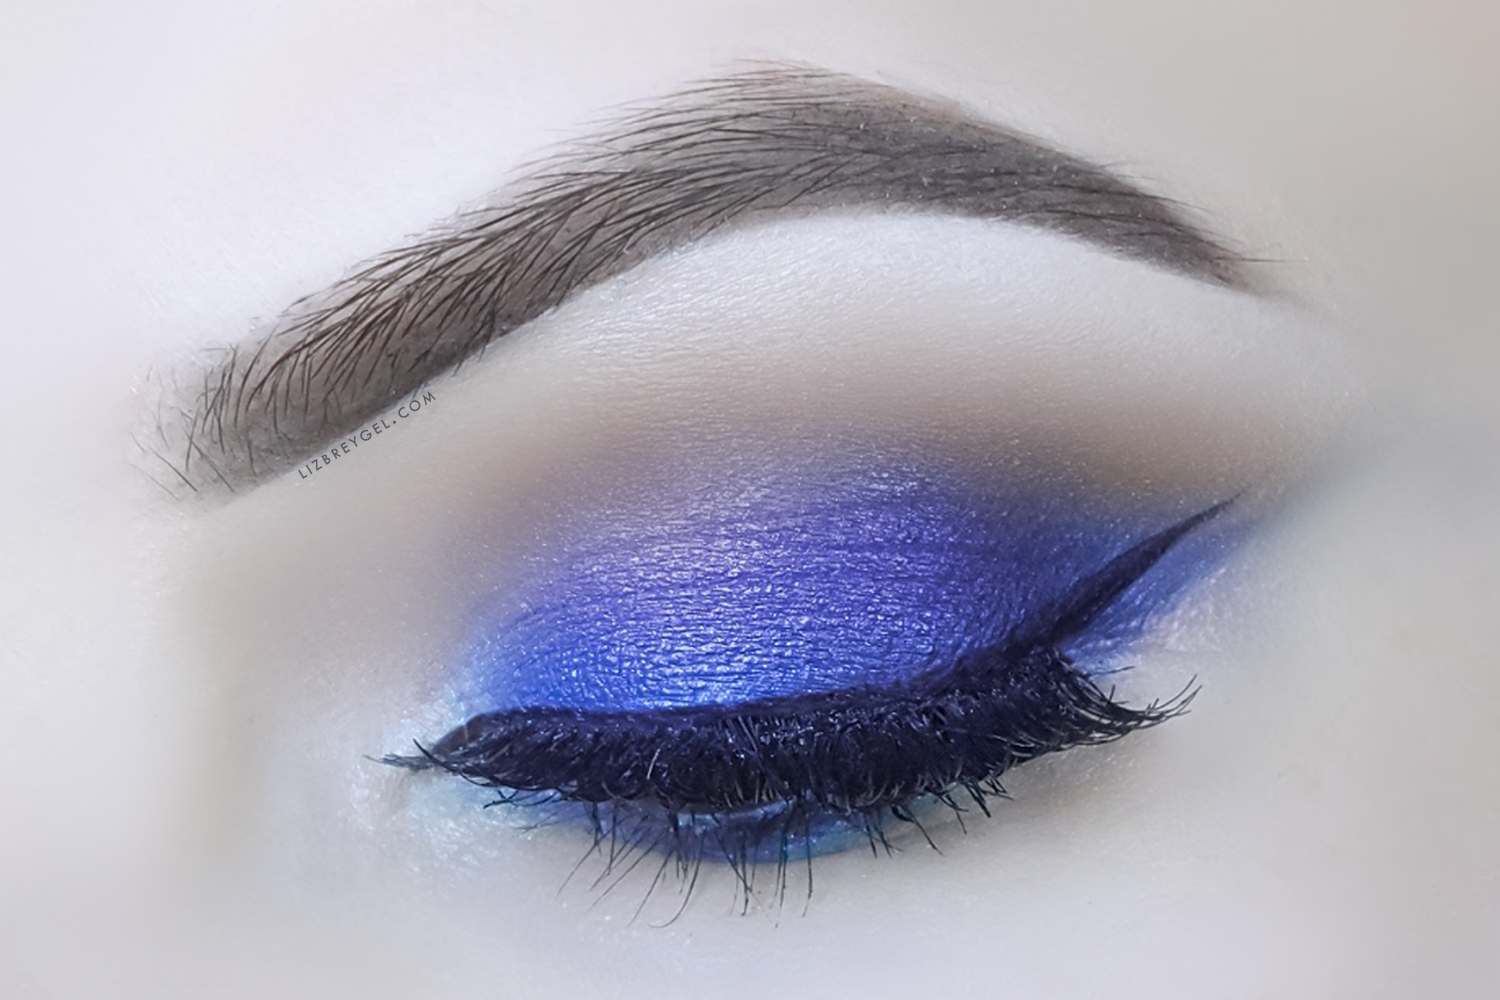 a close up picture of an closed eye with a smokey eye makeup look